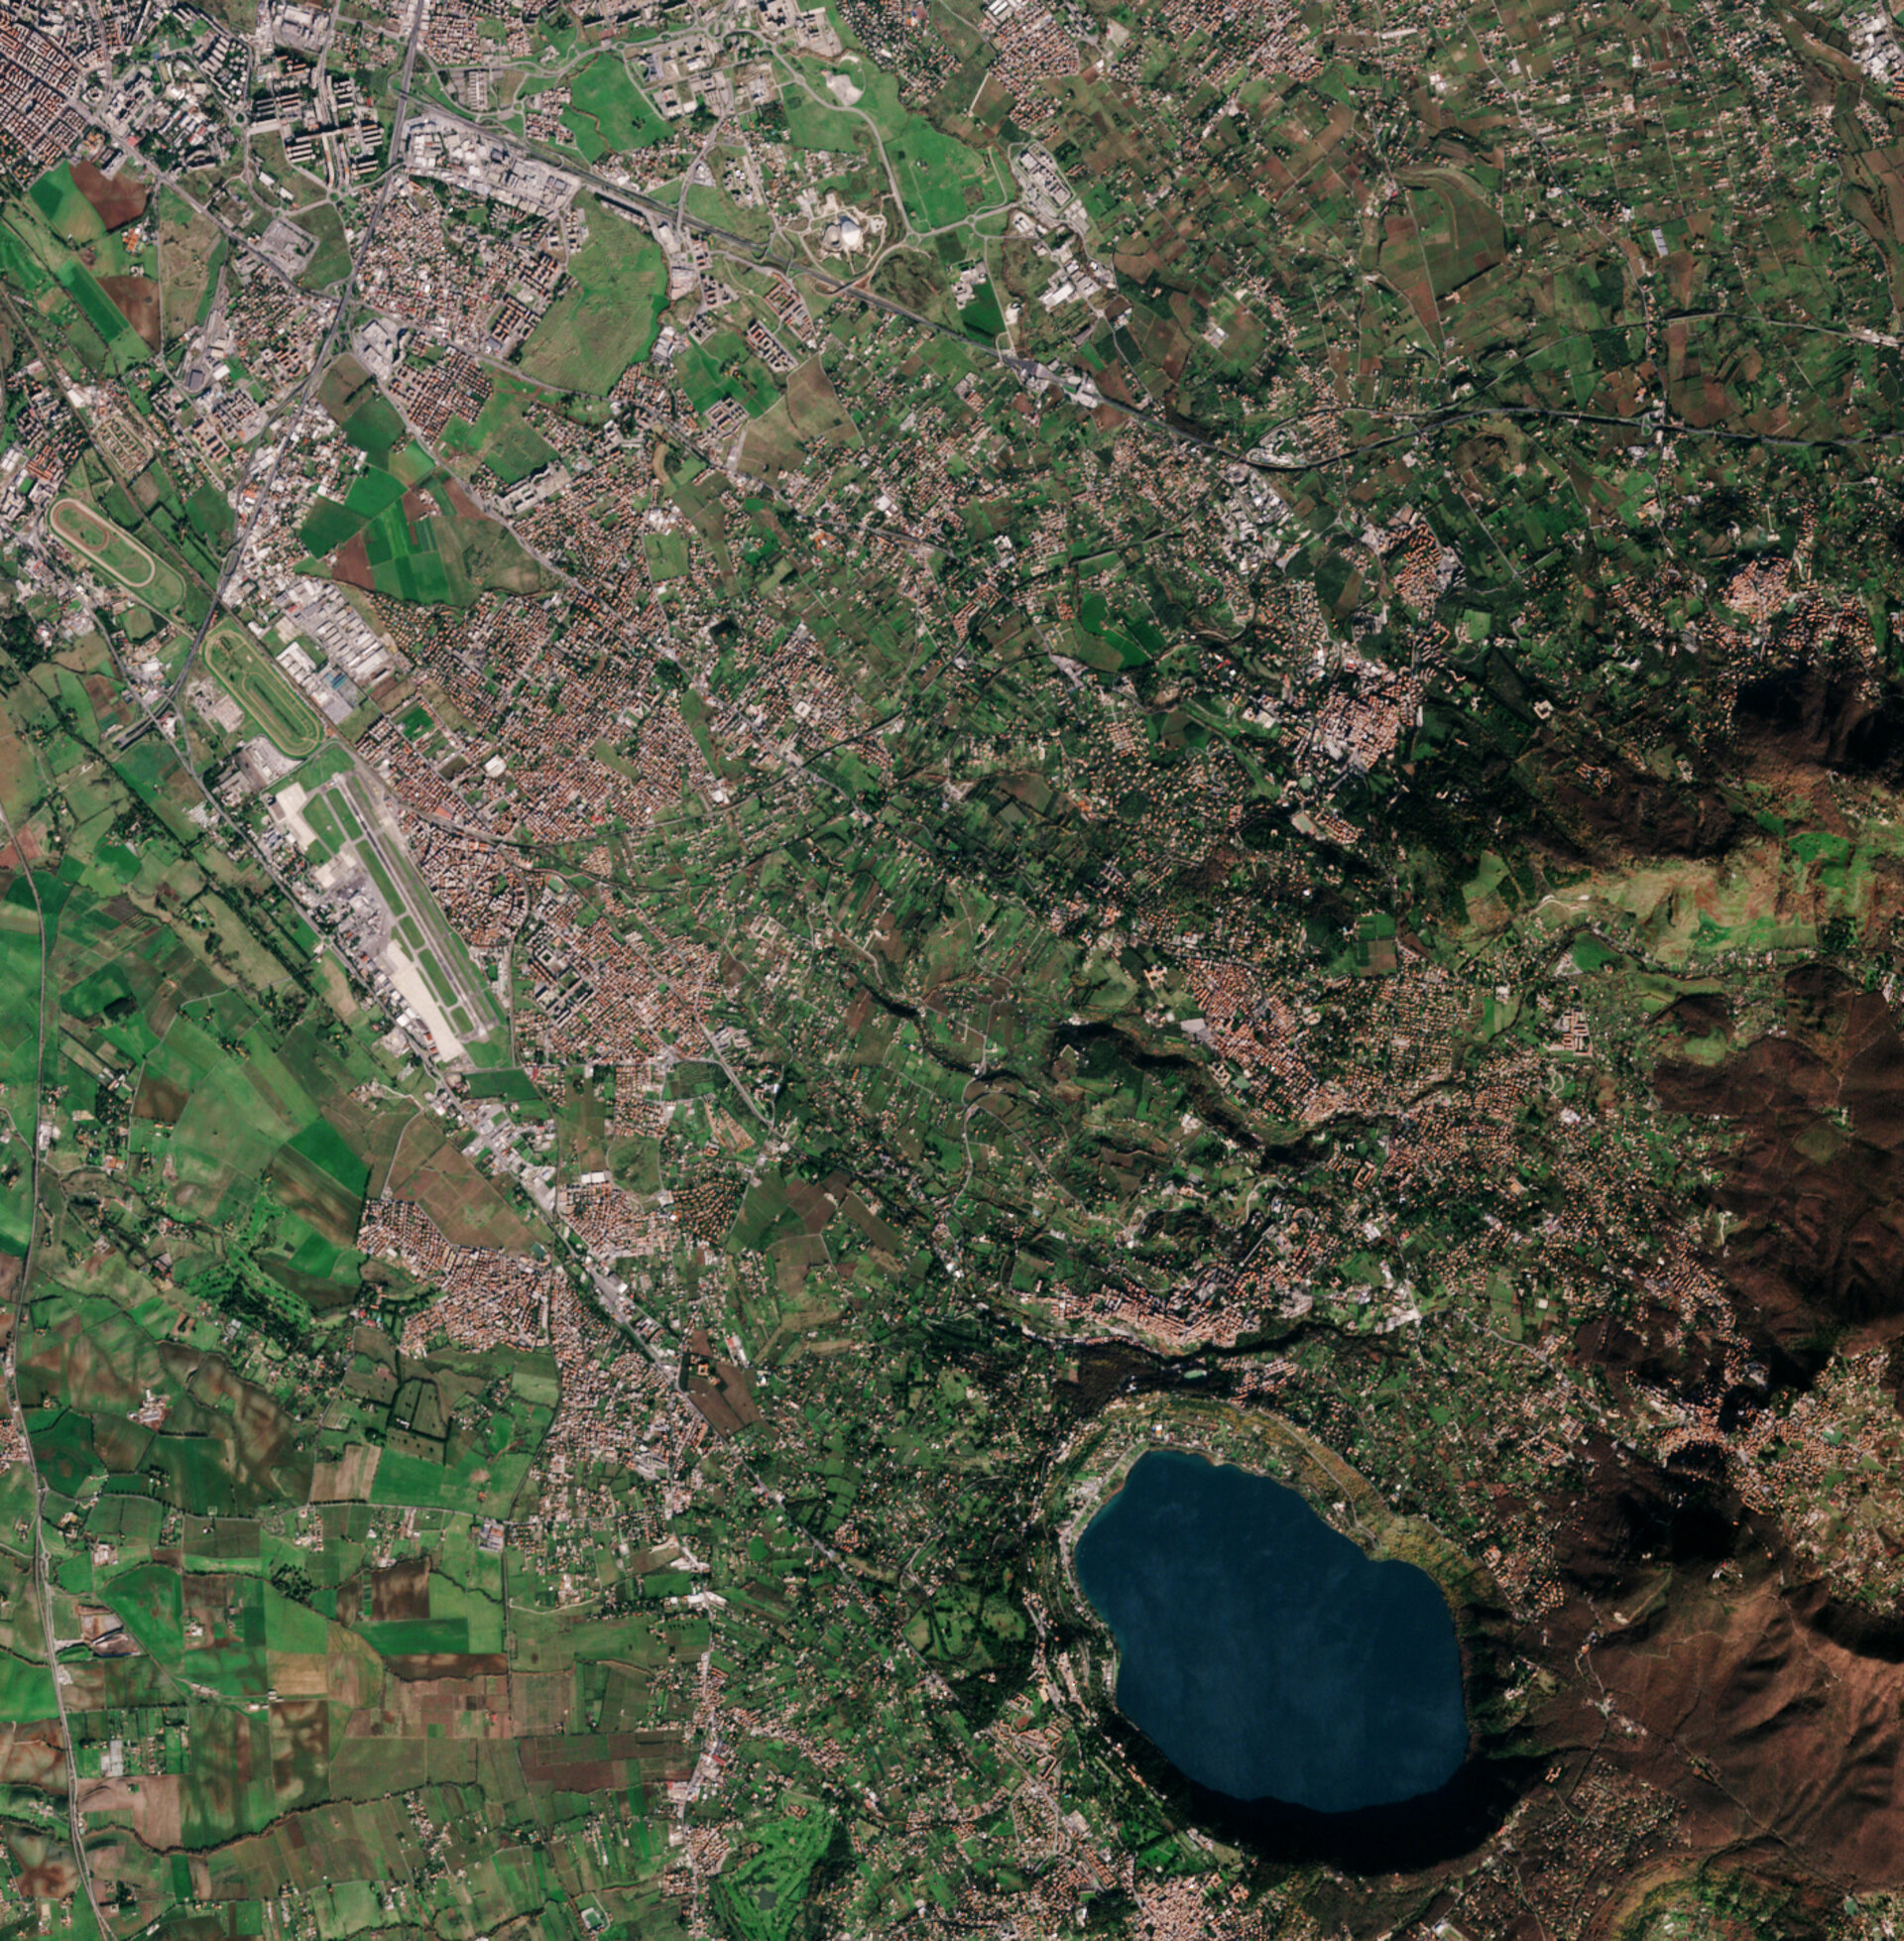 The Sentinel-2A satellite over Italy's Rome Castelli area